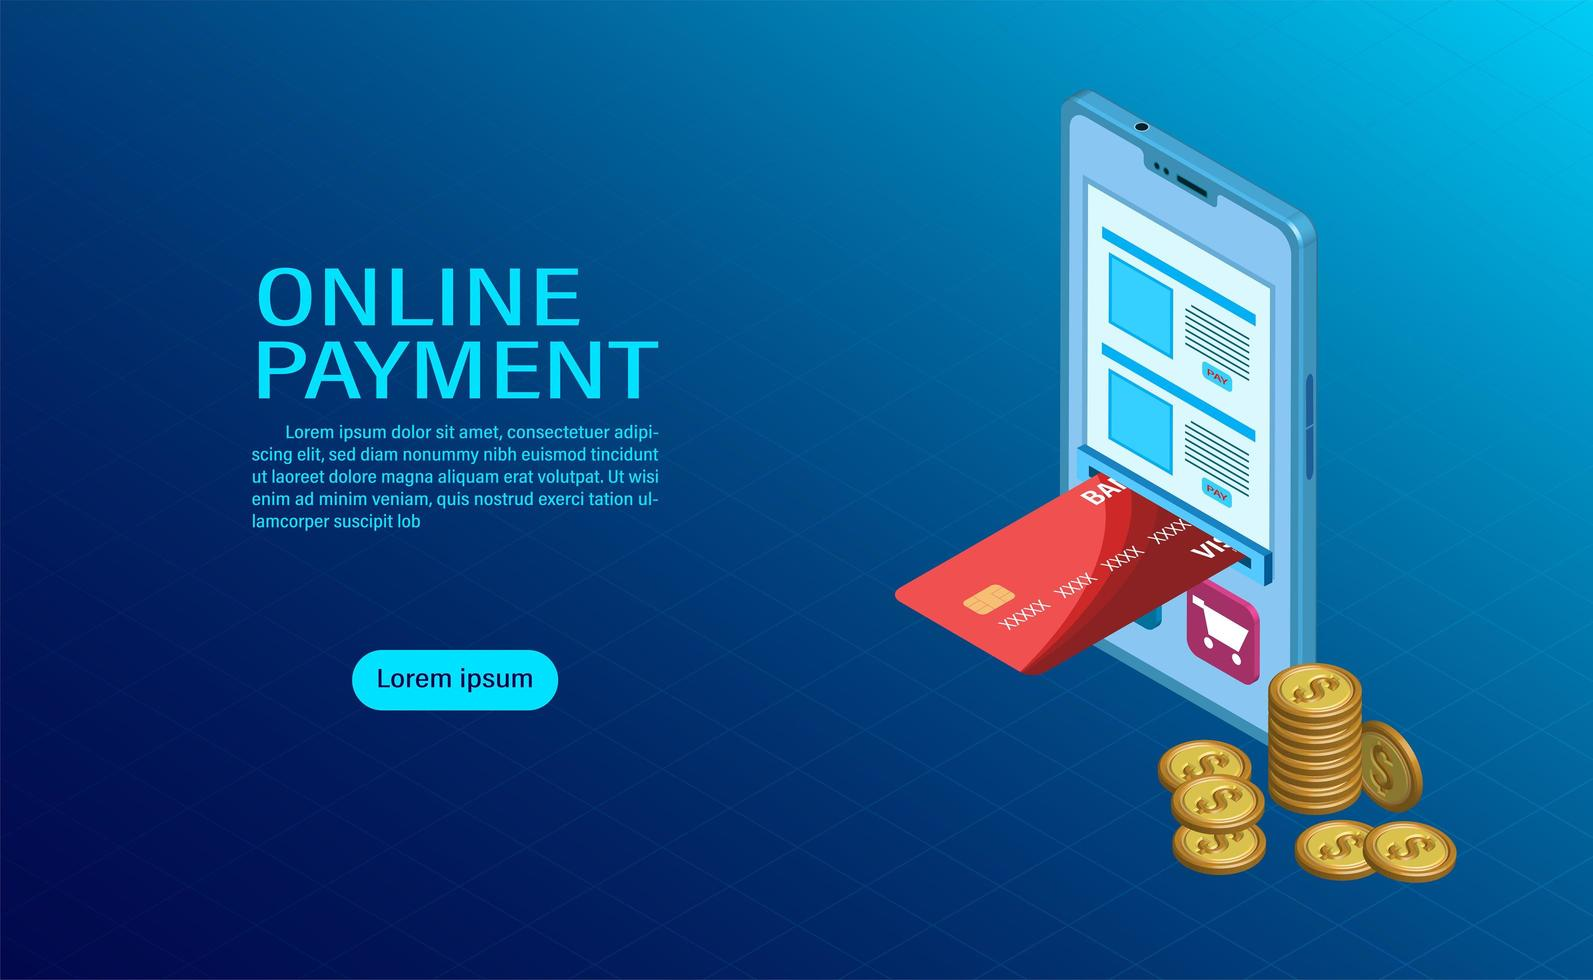 Online payment with mobile concept vector